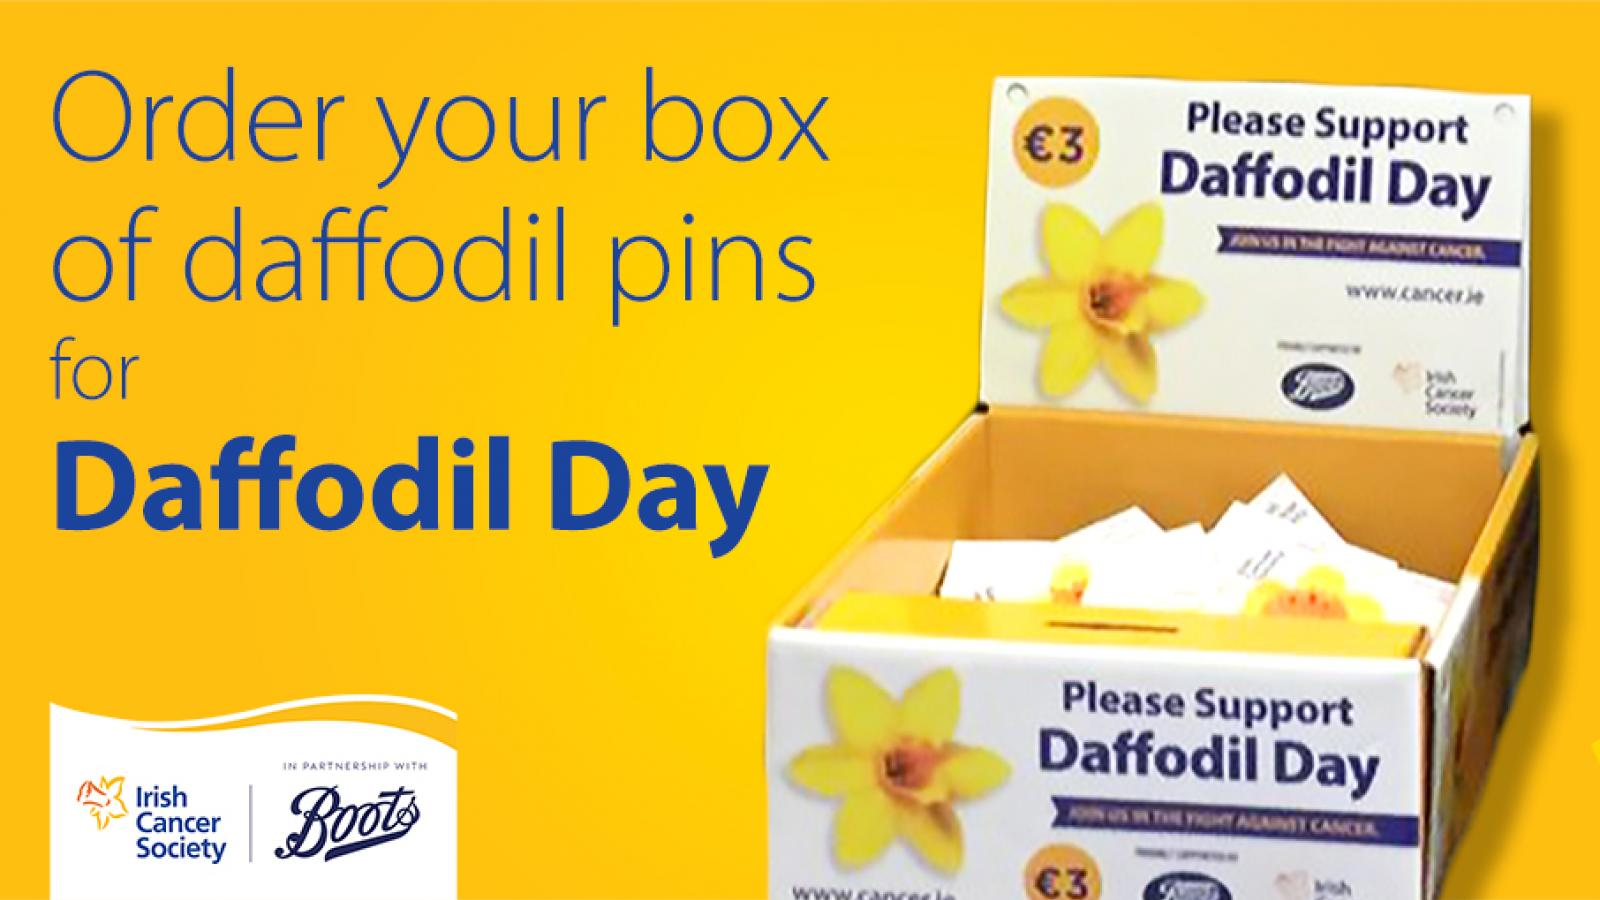 Order a box for Daffodil Day